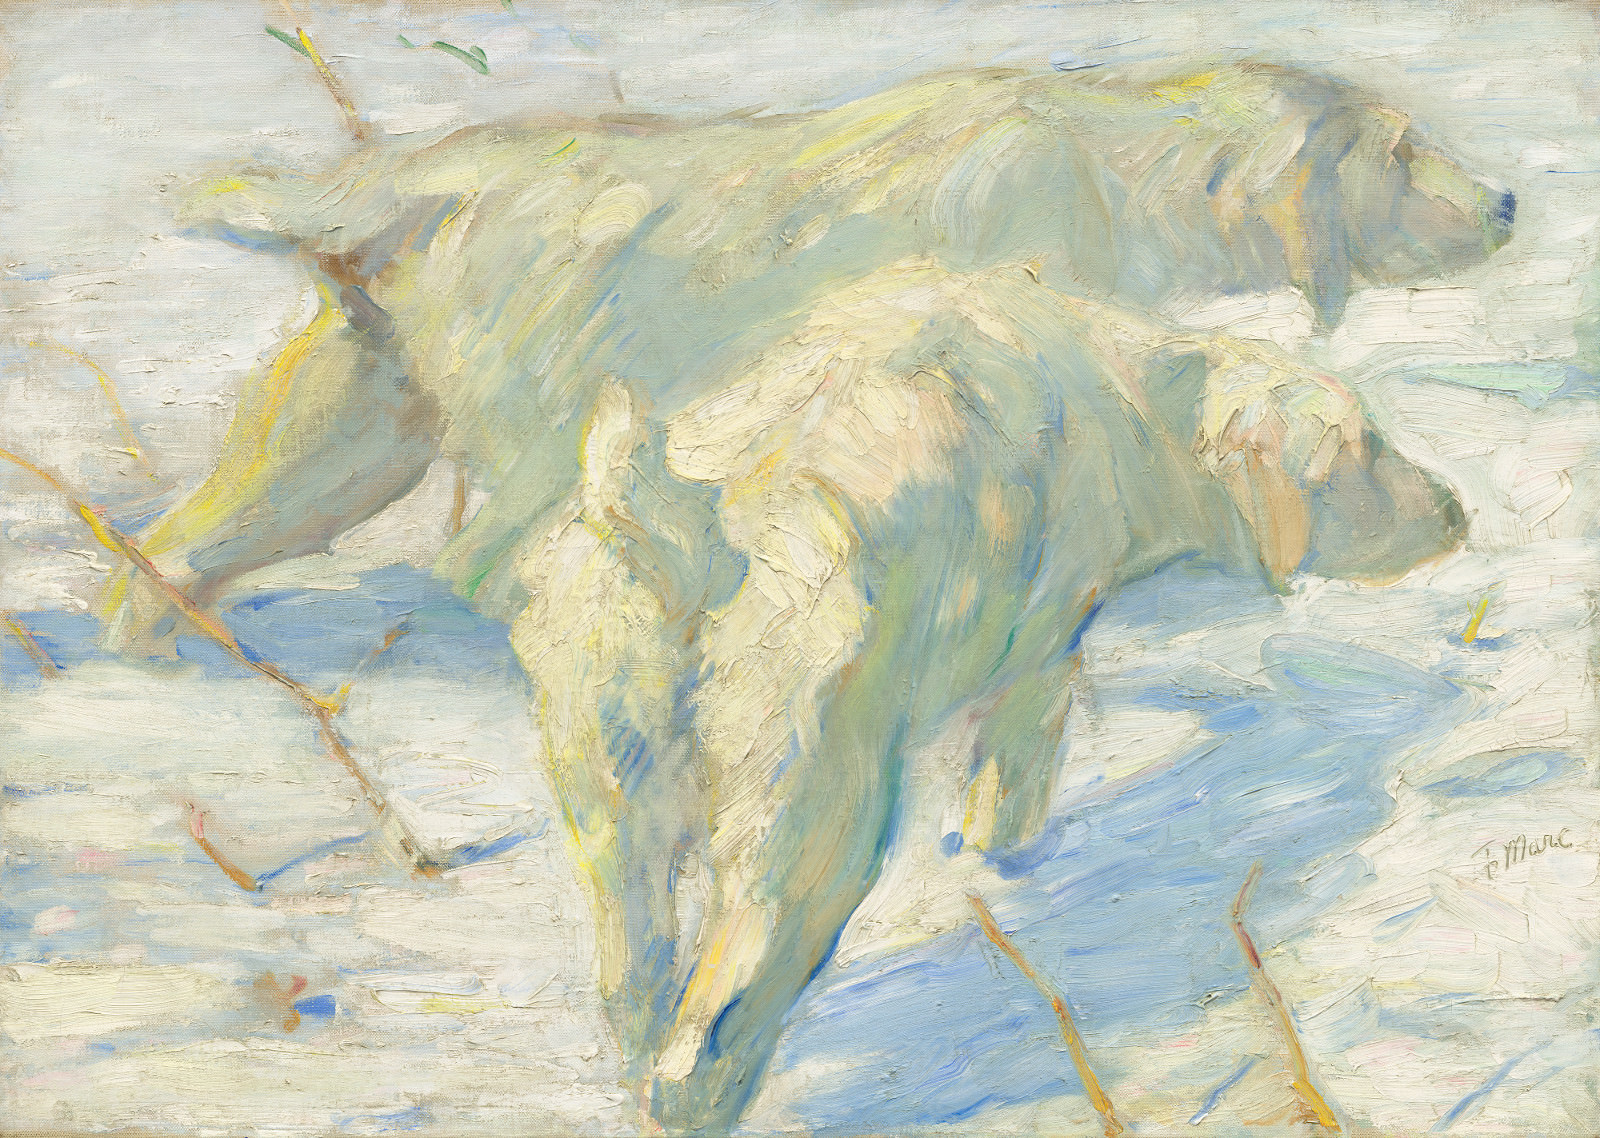 Fig. 11 - siberiano de la nieve Perros, Franz Marc, 1909/1910, óleo sobre lienzo, 80,5 x 114 cm. National Gallery of Art, Washington. Sr. regalo. e señora. Stephen M. Kellen.